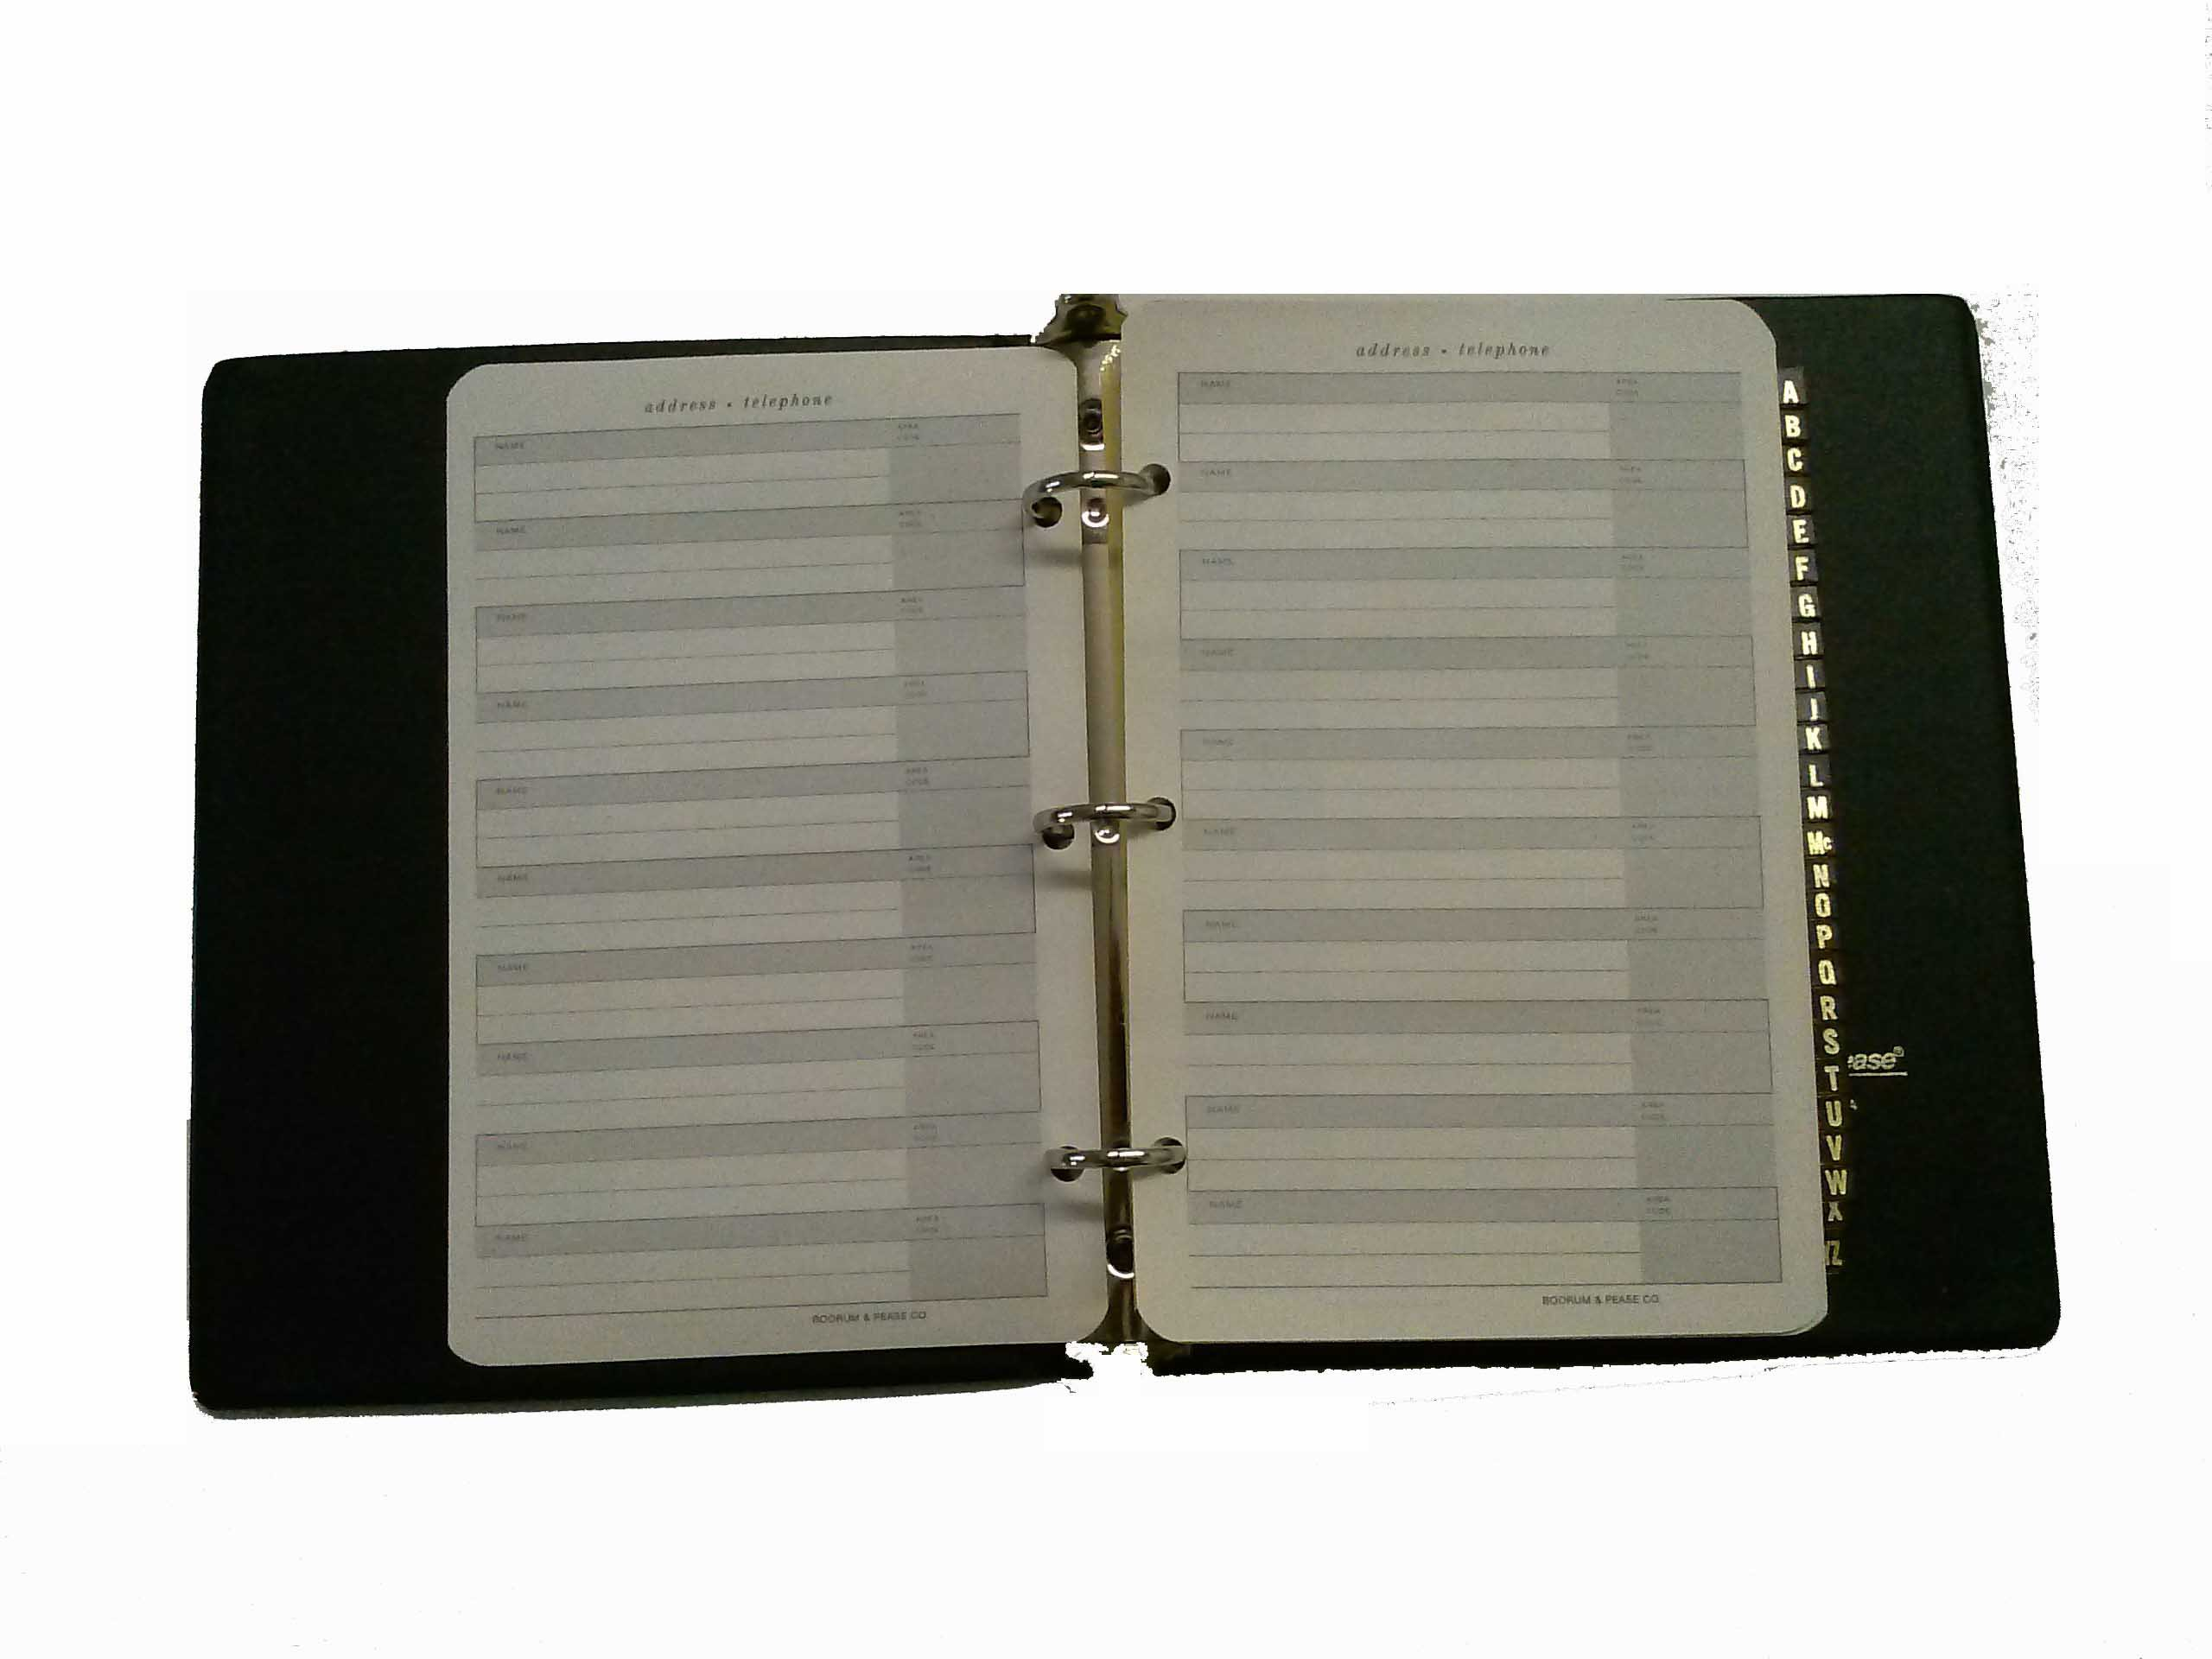 Boorum Pease P8 Telephone Address Book Gold Lettered Tabs A-Z Black Cover 3 Ring Binder 7'' (W) x 9'' (H) x 1 1/2'' (D) by Boorum Pease